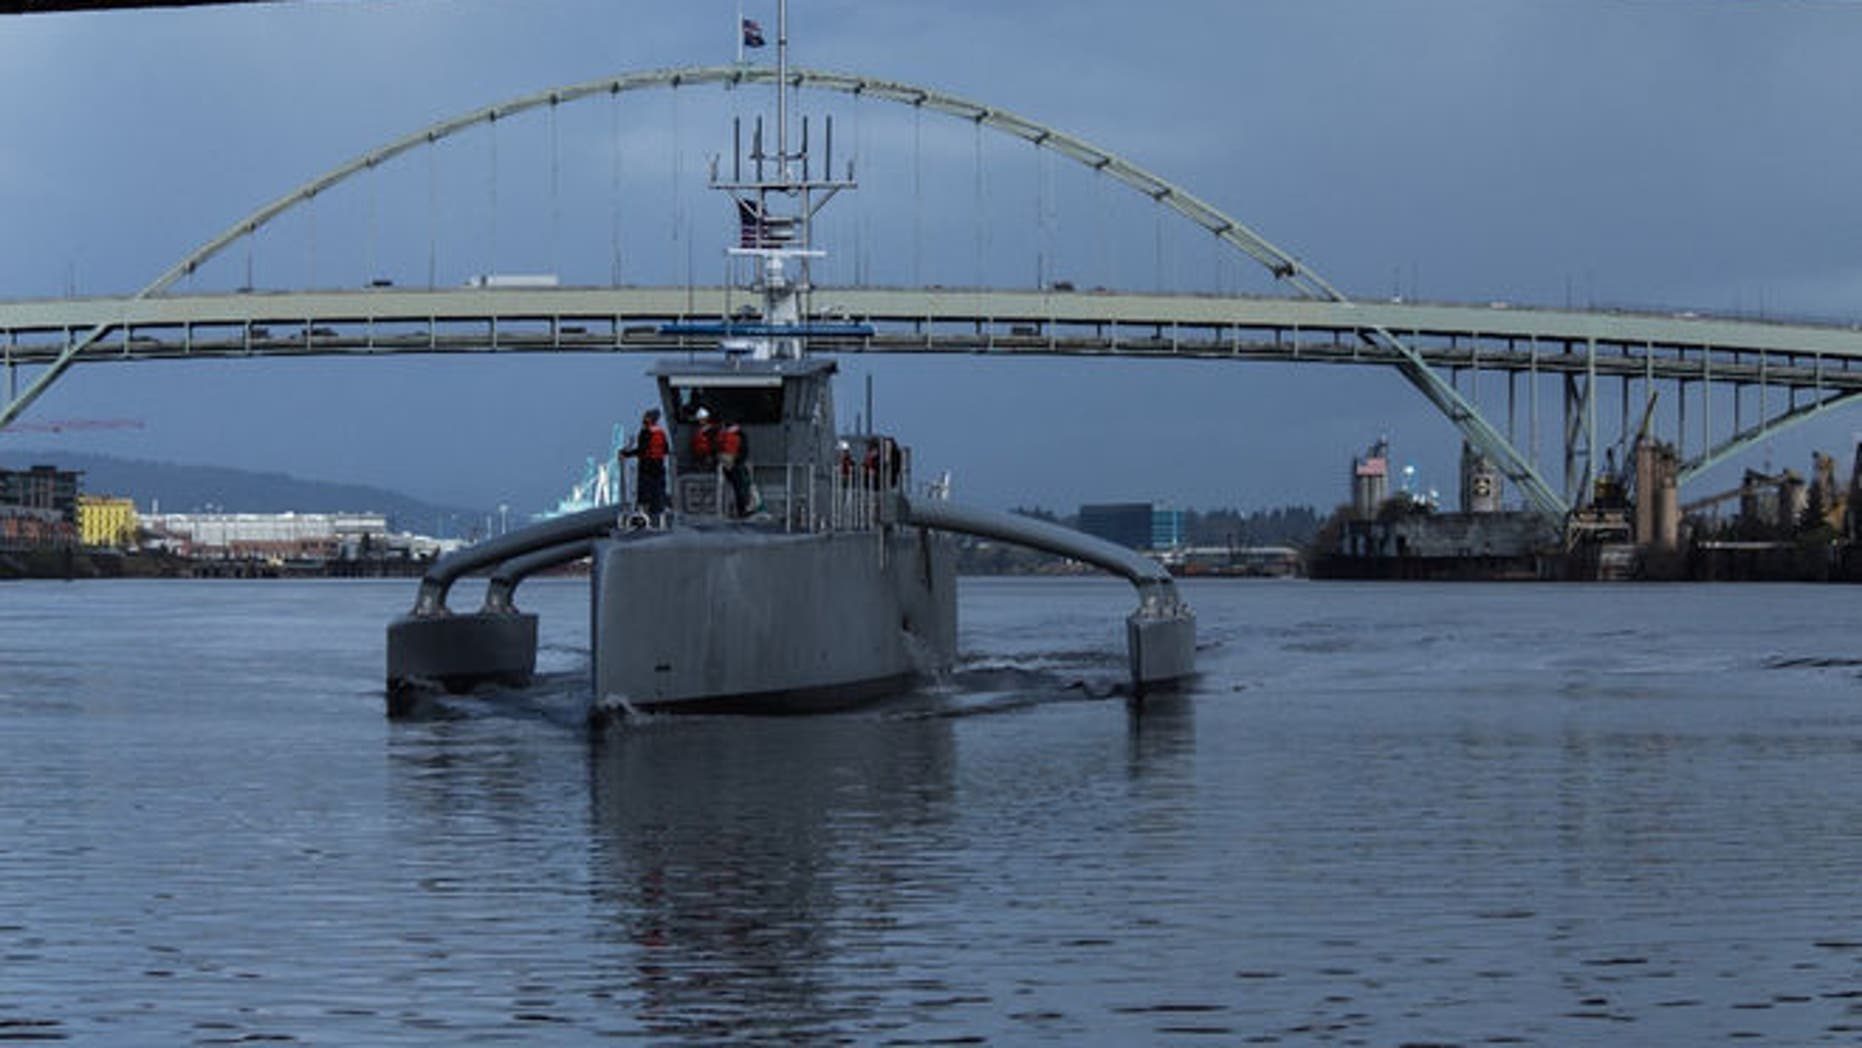 The world's first unmanned ship completed its first performance tests, and is set to join the US Navy in 2018 to hunt enemy submarines lurking in the deep.